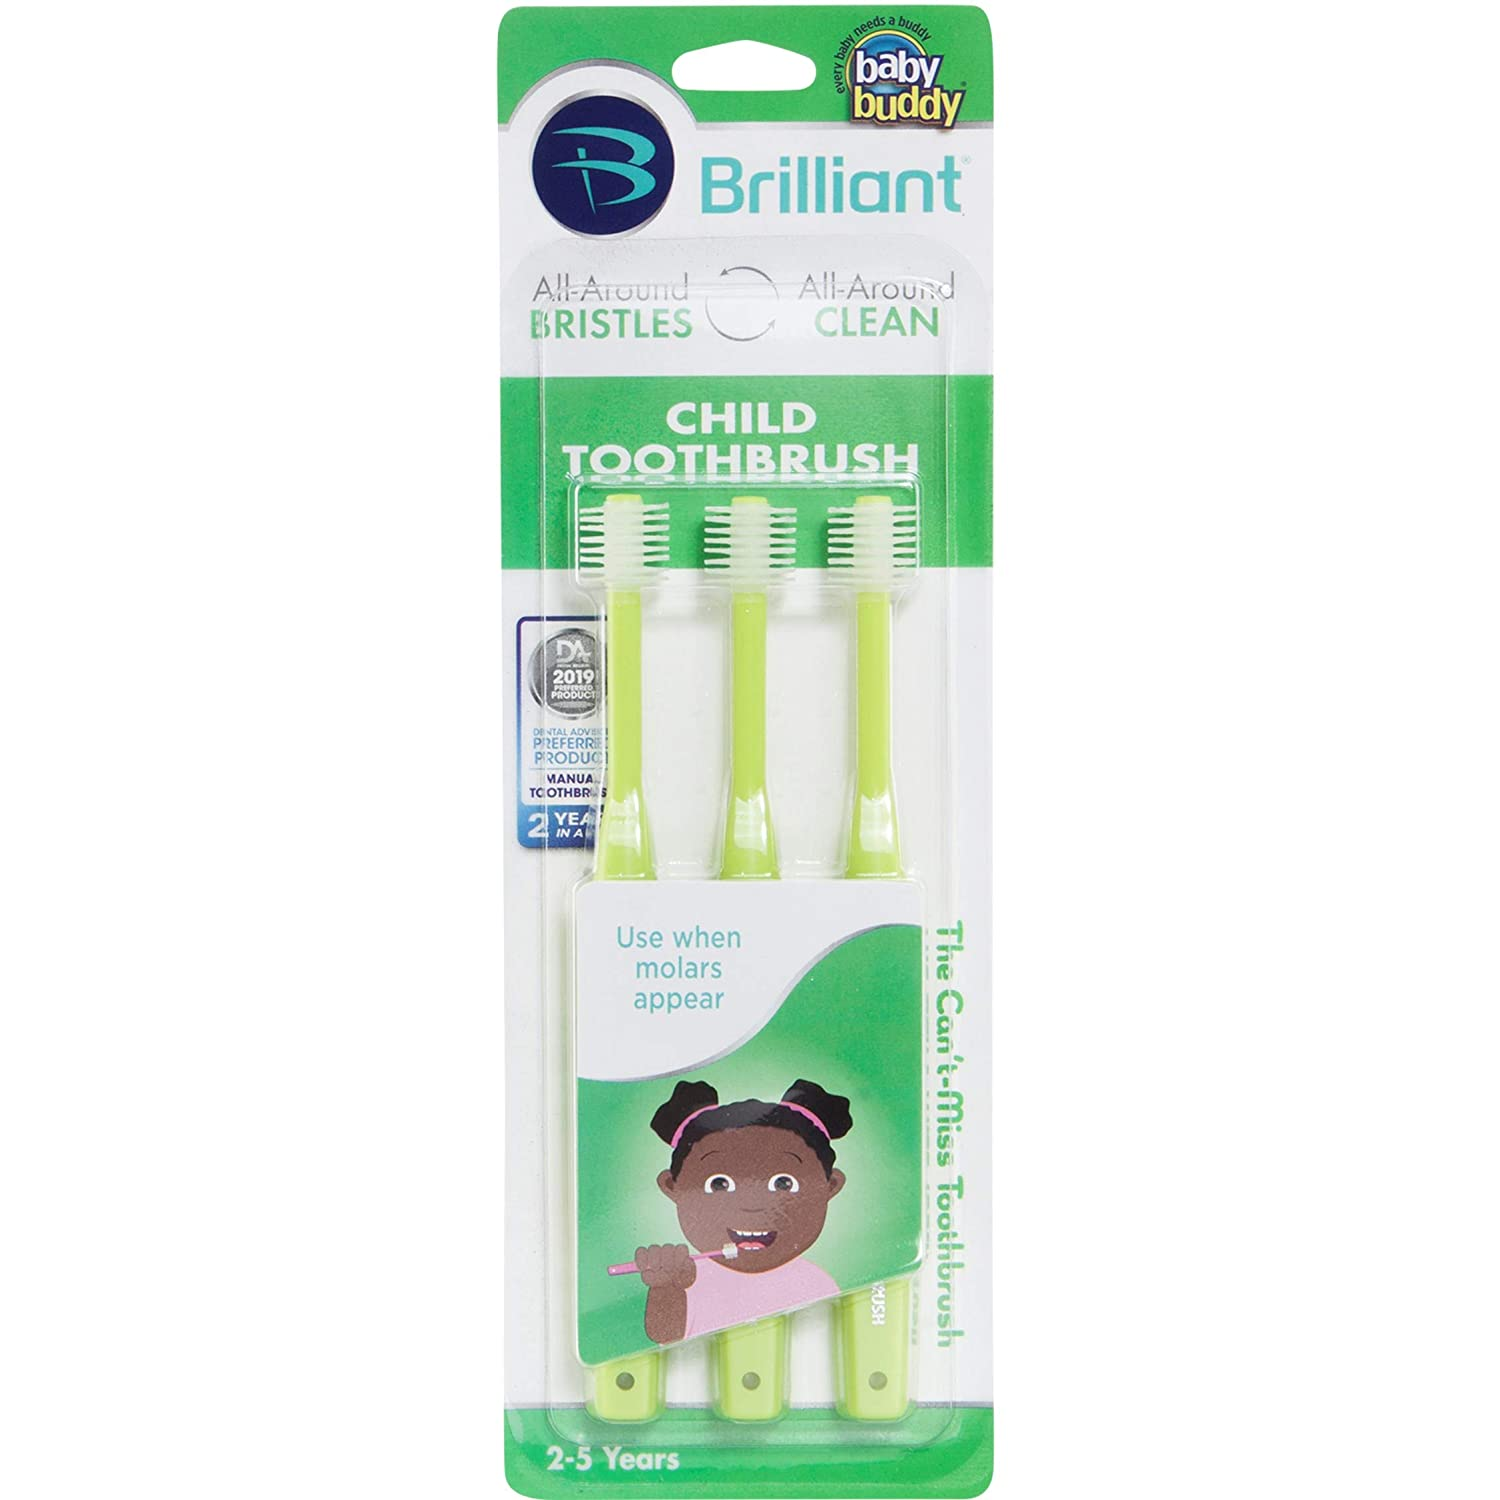 Kids Love Them Pink BPA Free Super-Fine Micro Bristles Clean All-Around Mouth Brilliant Child Toothbrush by Baby Buddy 1 Count When Molars Appear Ages 2-5 Years